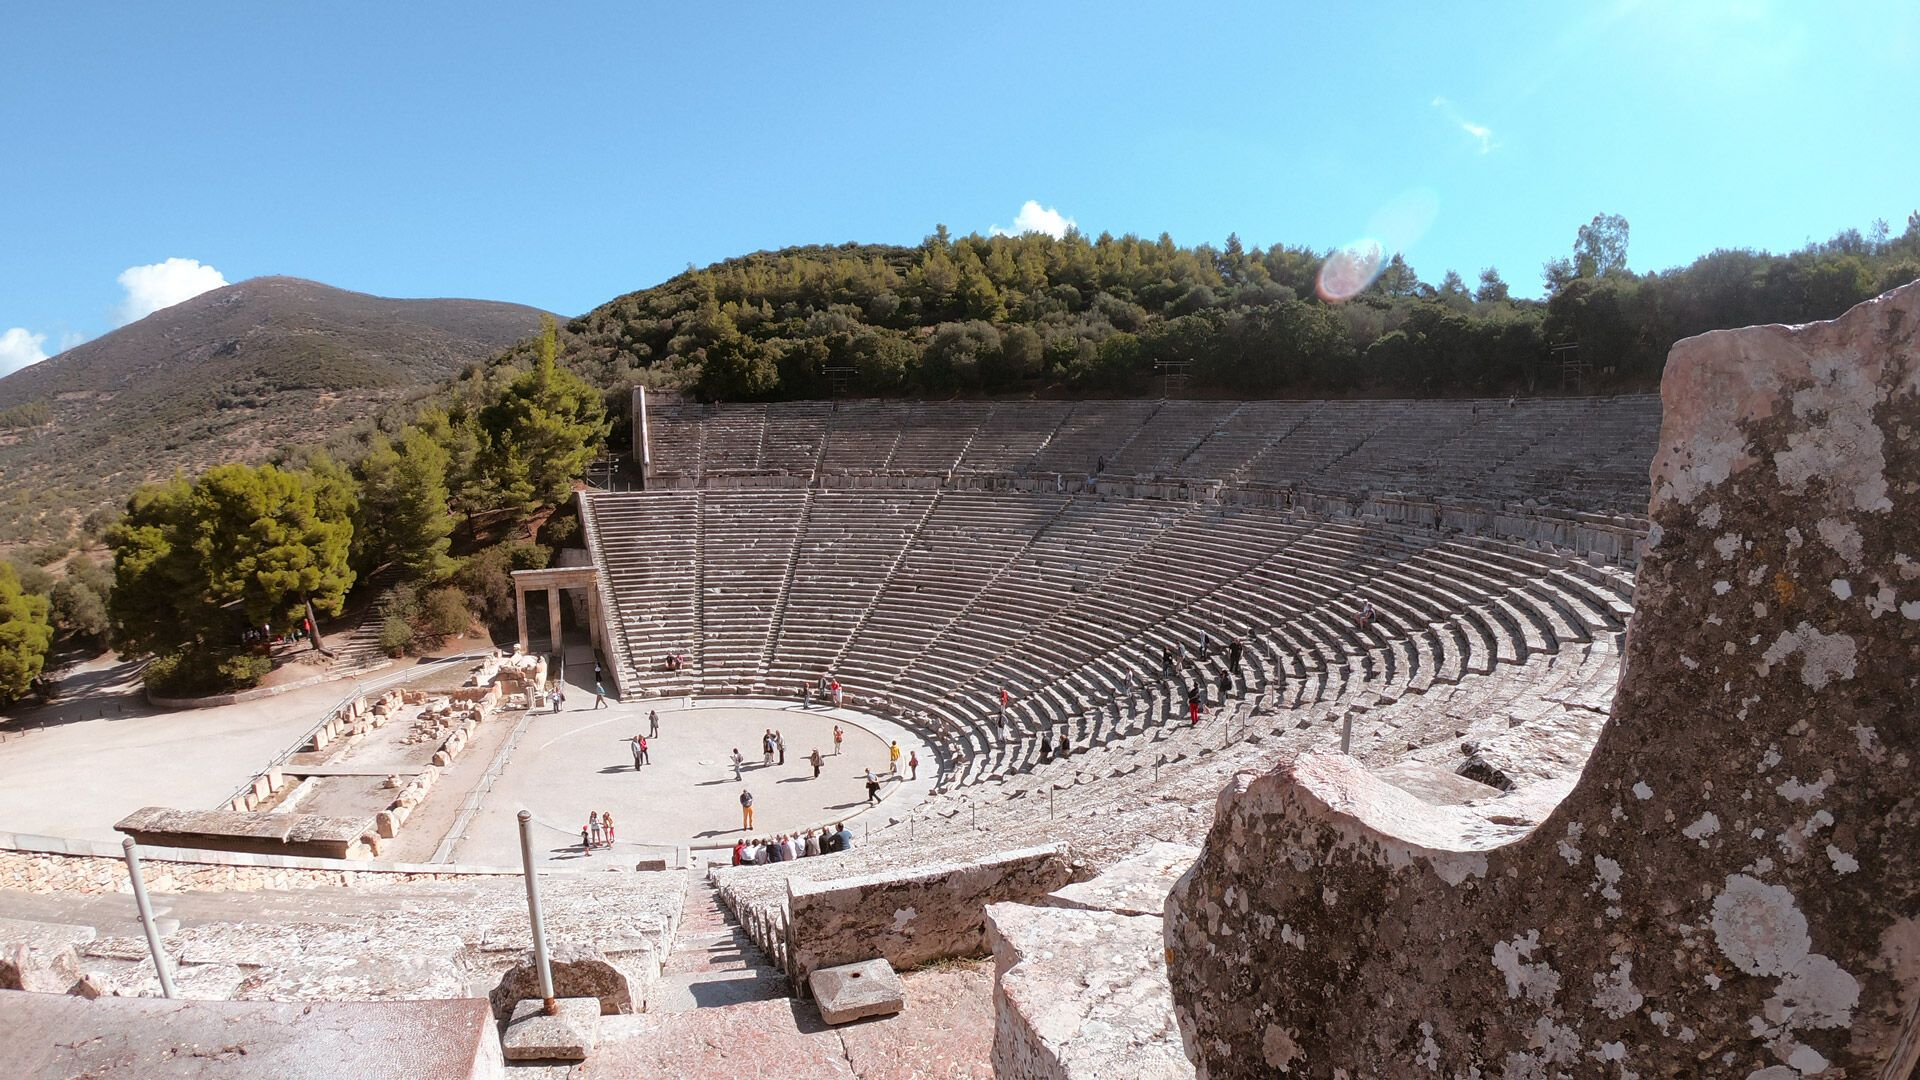 The famous theatre at Asclepius of Epidaurus is one of the most important monuments of ancient Greece